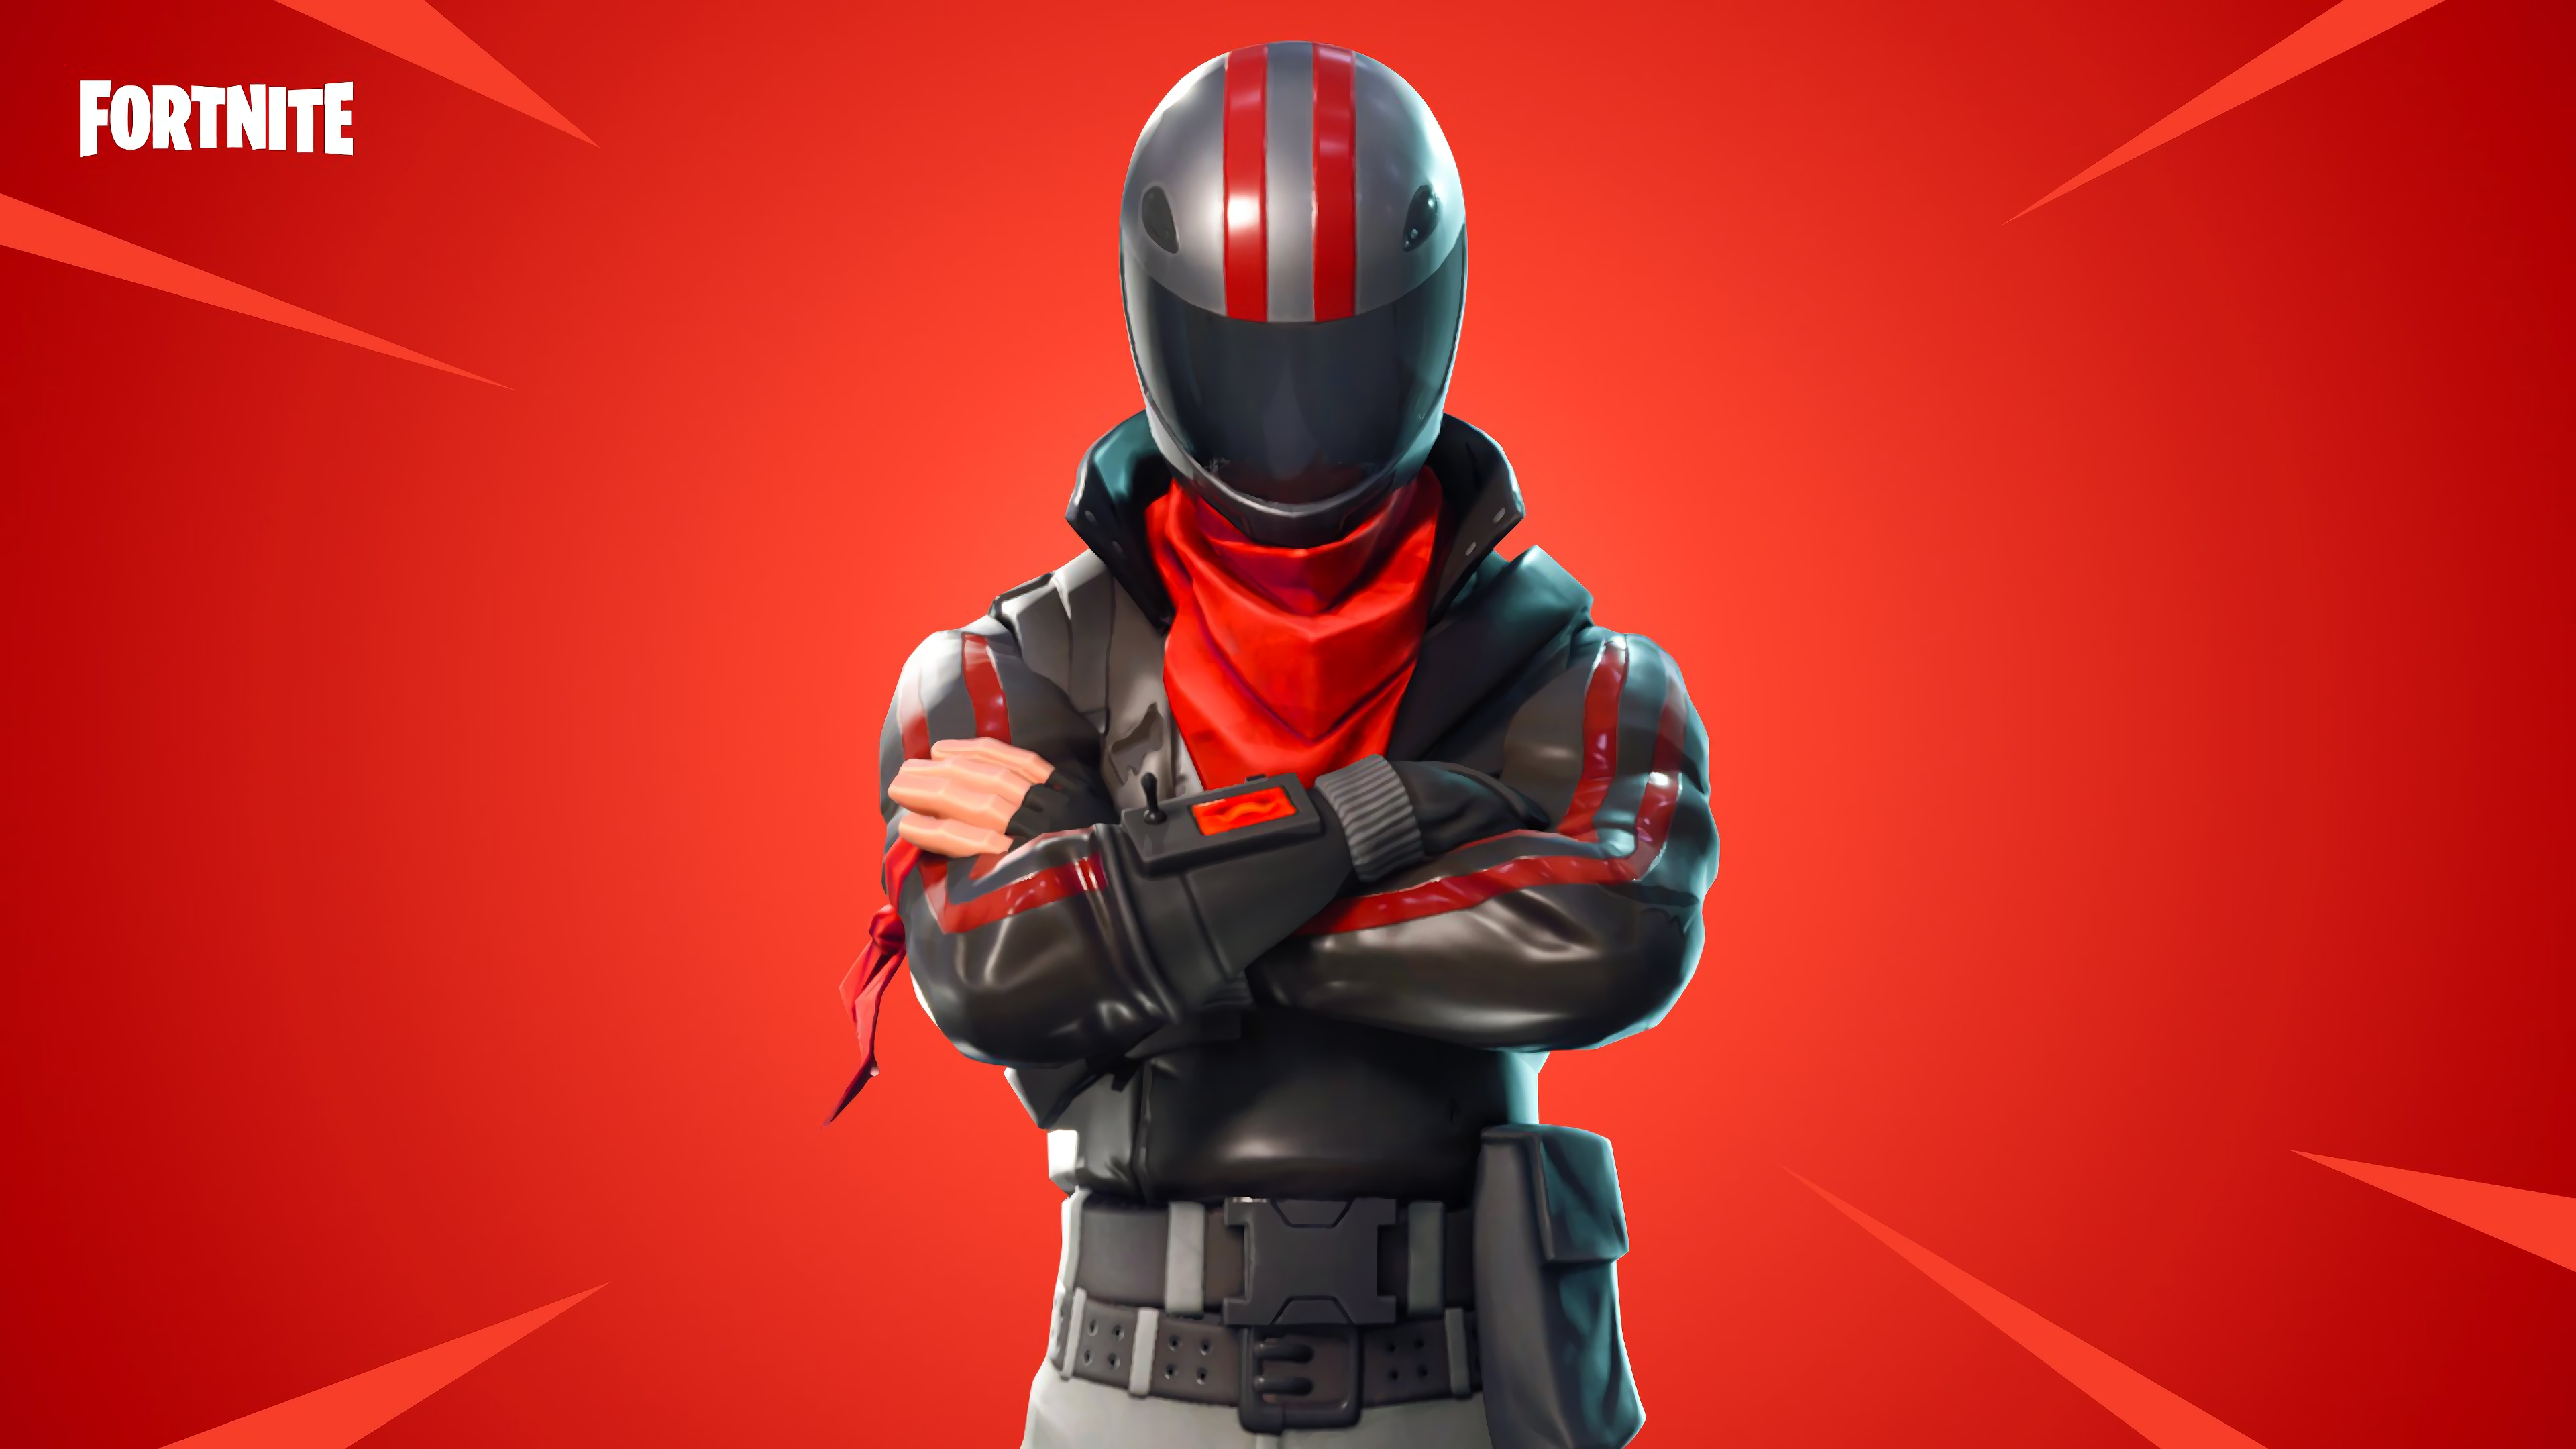 28 Fortnite Skin Wallpapers On Wallpapersafari